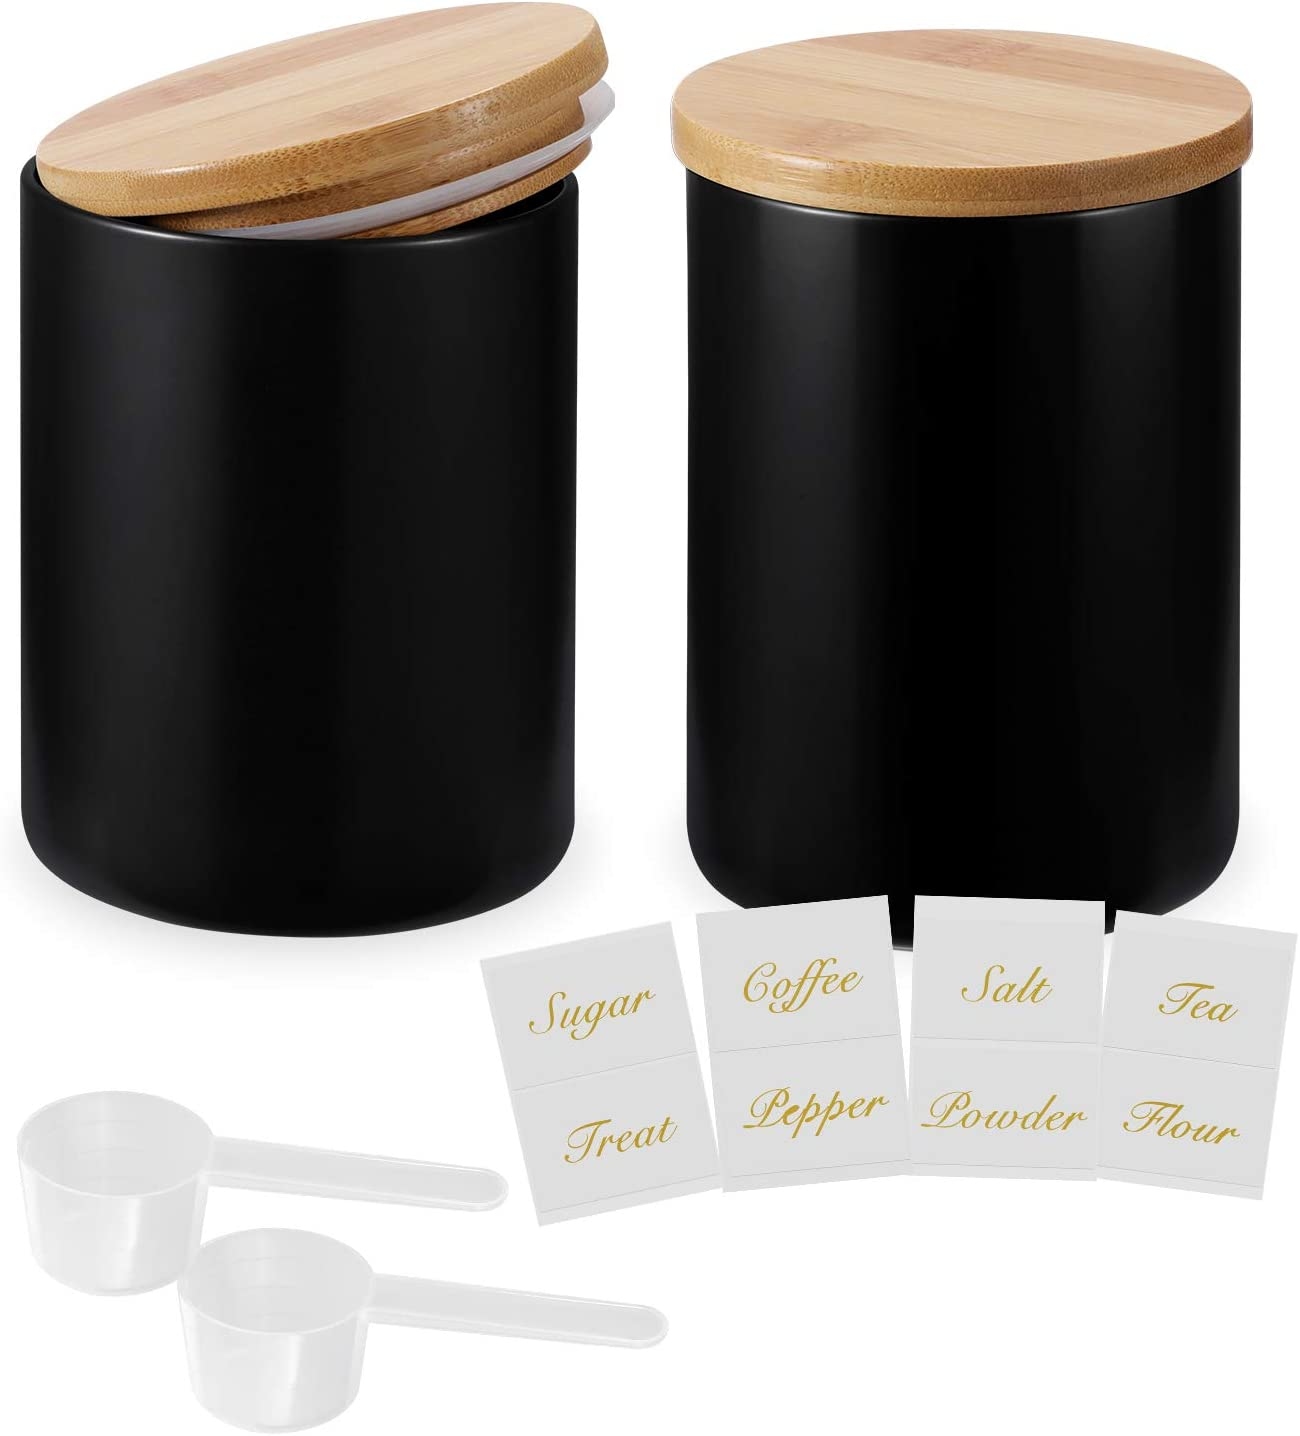 Kitchen Canisters with Bamboo Lids, Airtight Ceramic Canister Set, Coffee, Sugar, Tea, Flour Storage Containers, Farmhouse Kitchen Decor